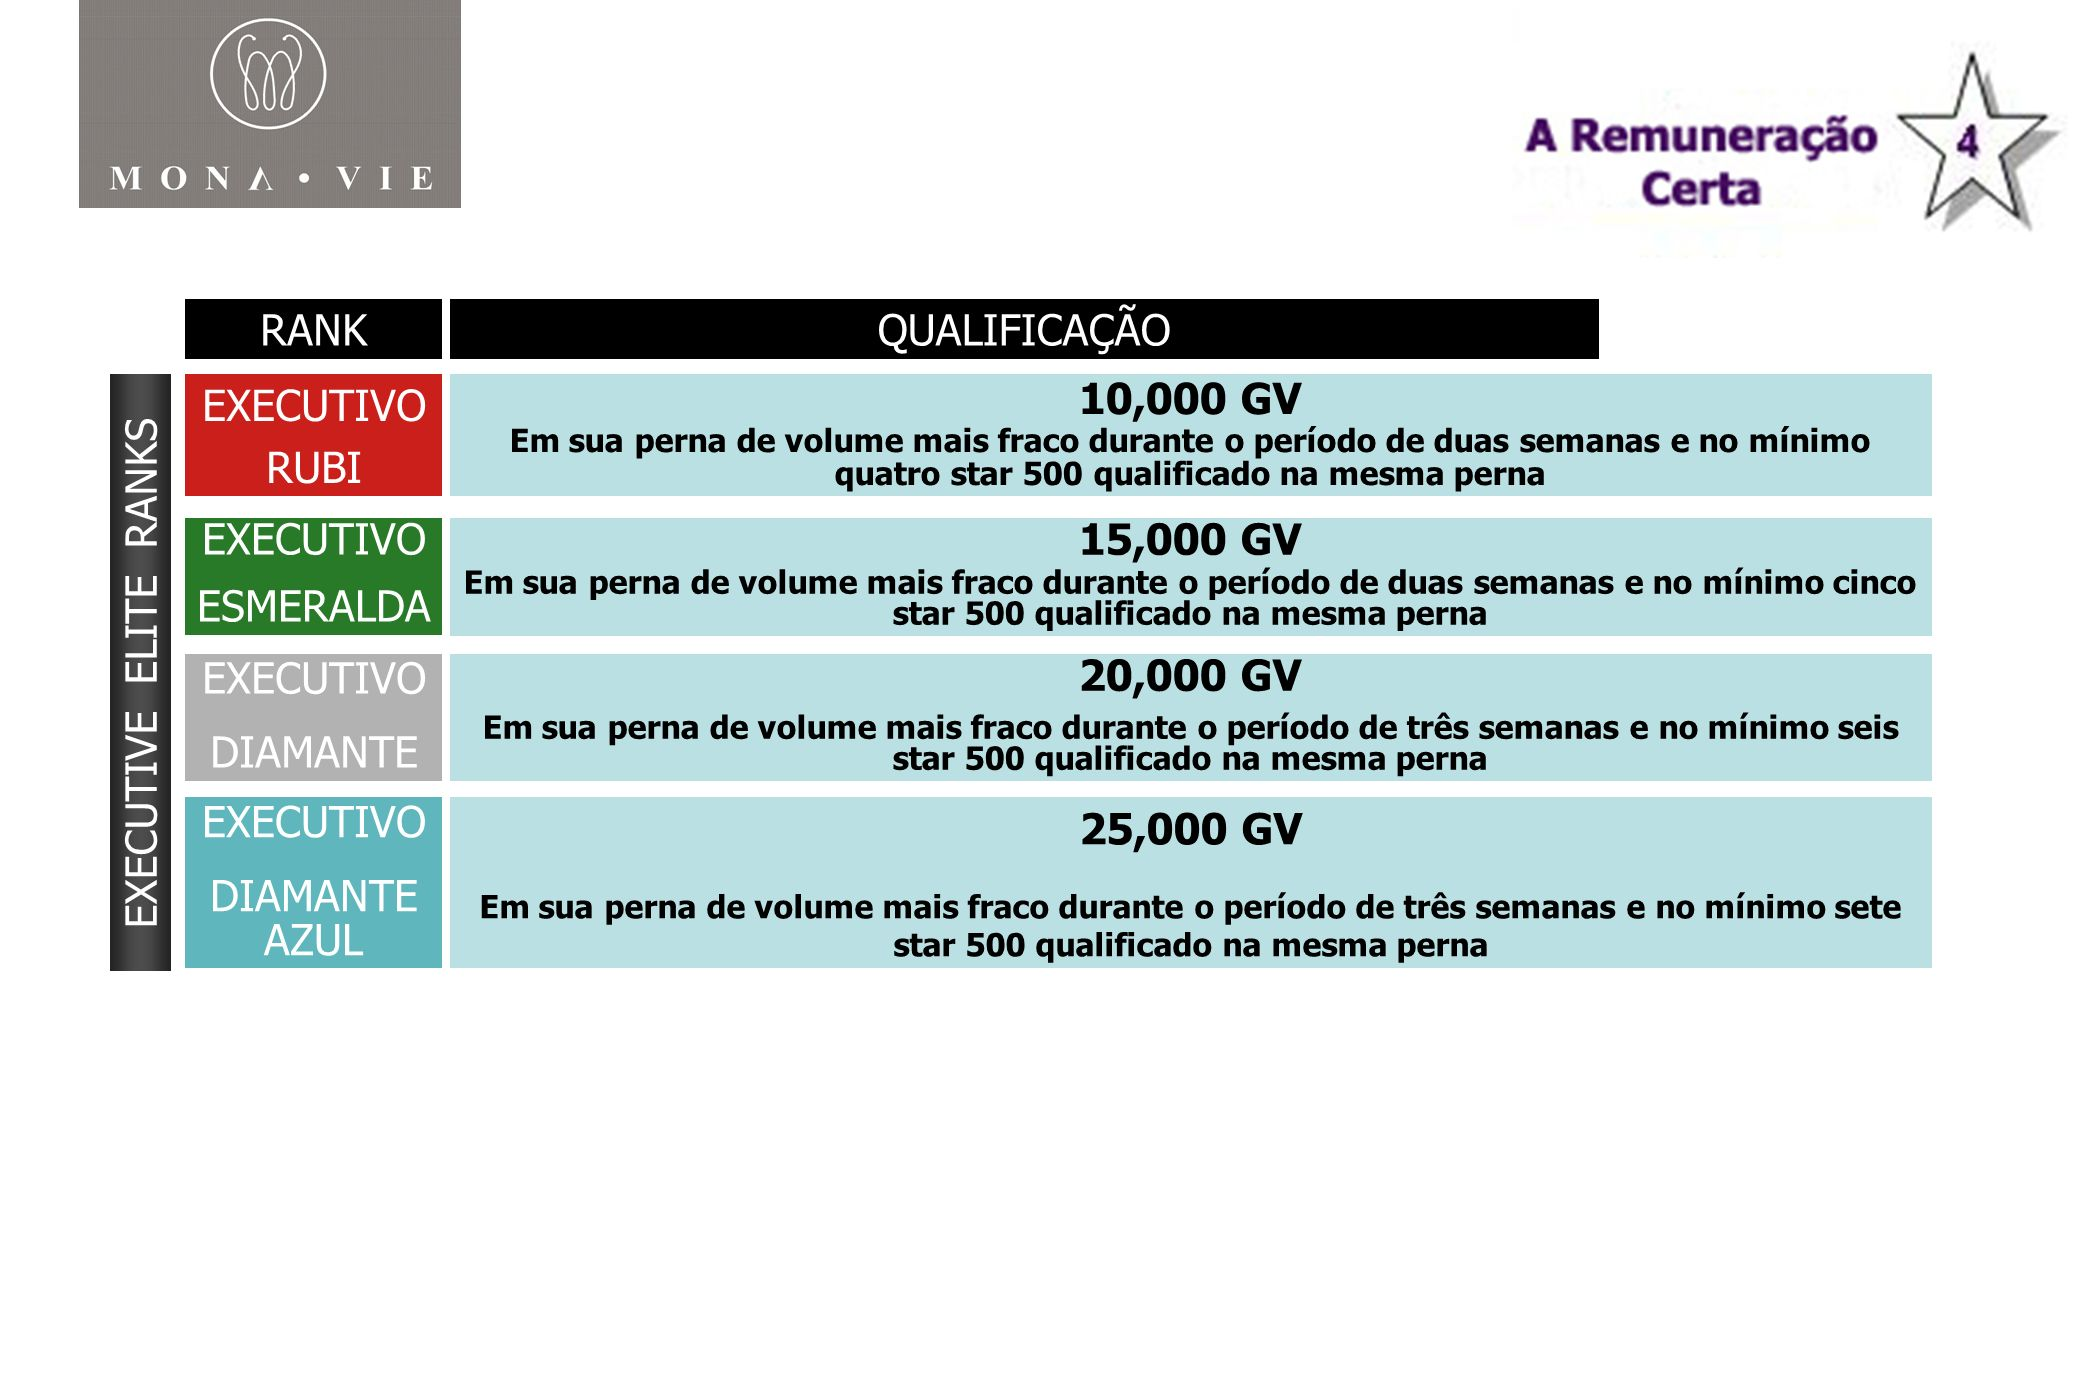 RANK MONAVIE RANKQUALIFICAÇÃO EXECUTIVE ELITE RANKS EXECUTIVO RUBI EXECUTIVO ESMERALDA EXECUTIVO DIAMANTE 10,000 GV Em sua perna de volume mais fraco